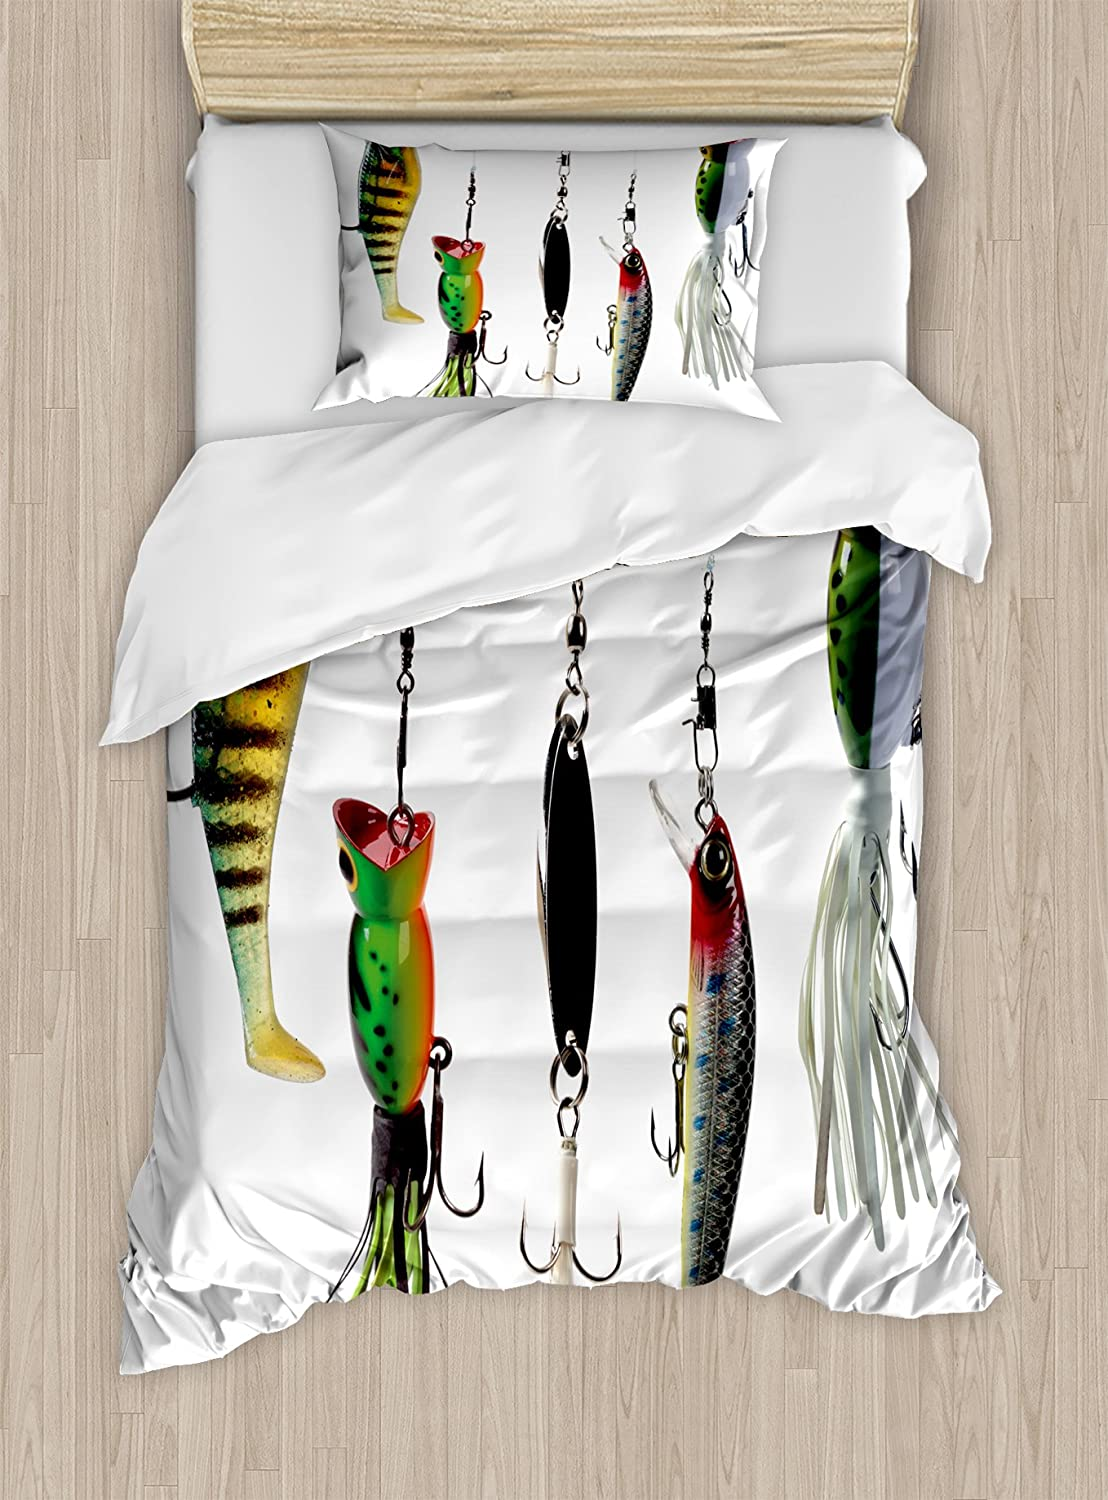 Ambesonne Fishing Duvet Cover Set Twin Size, Various Types of Fishing Baits Hobby Leisure Passtime Sports Hooks Catch Elements Theme, A Decorative 2 Piece Bedding Set with 1 Pillow Sham, Multicolor